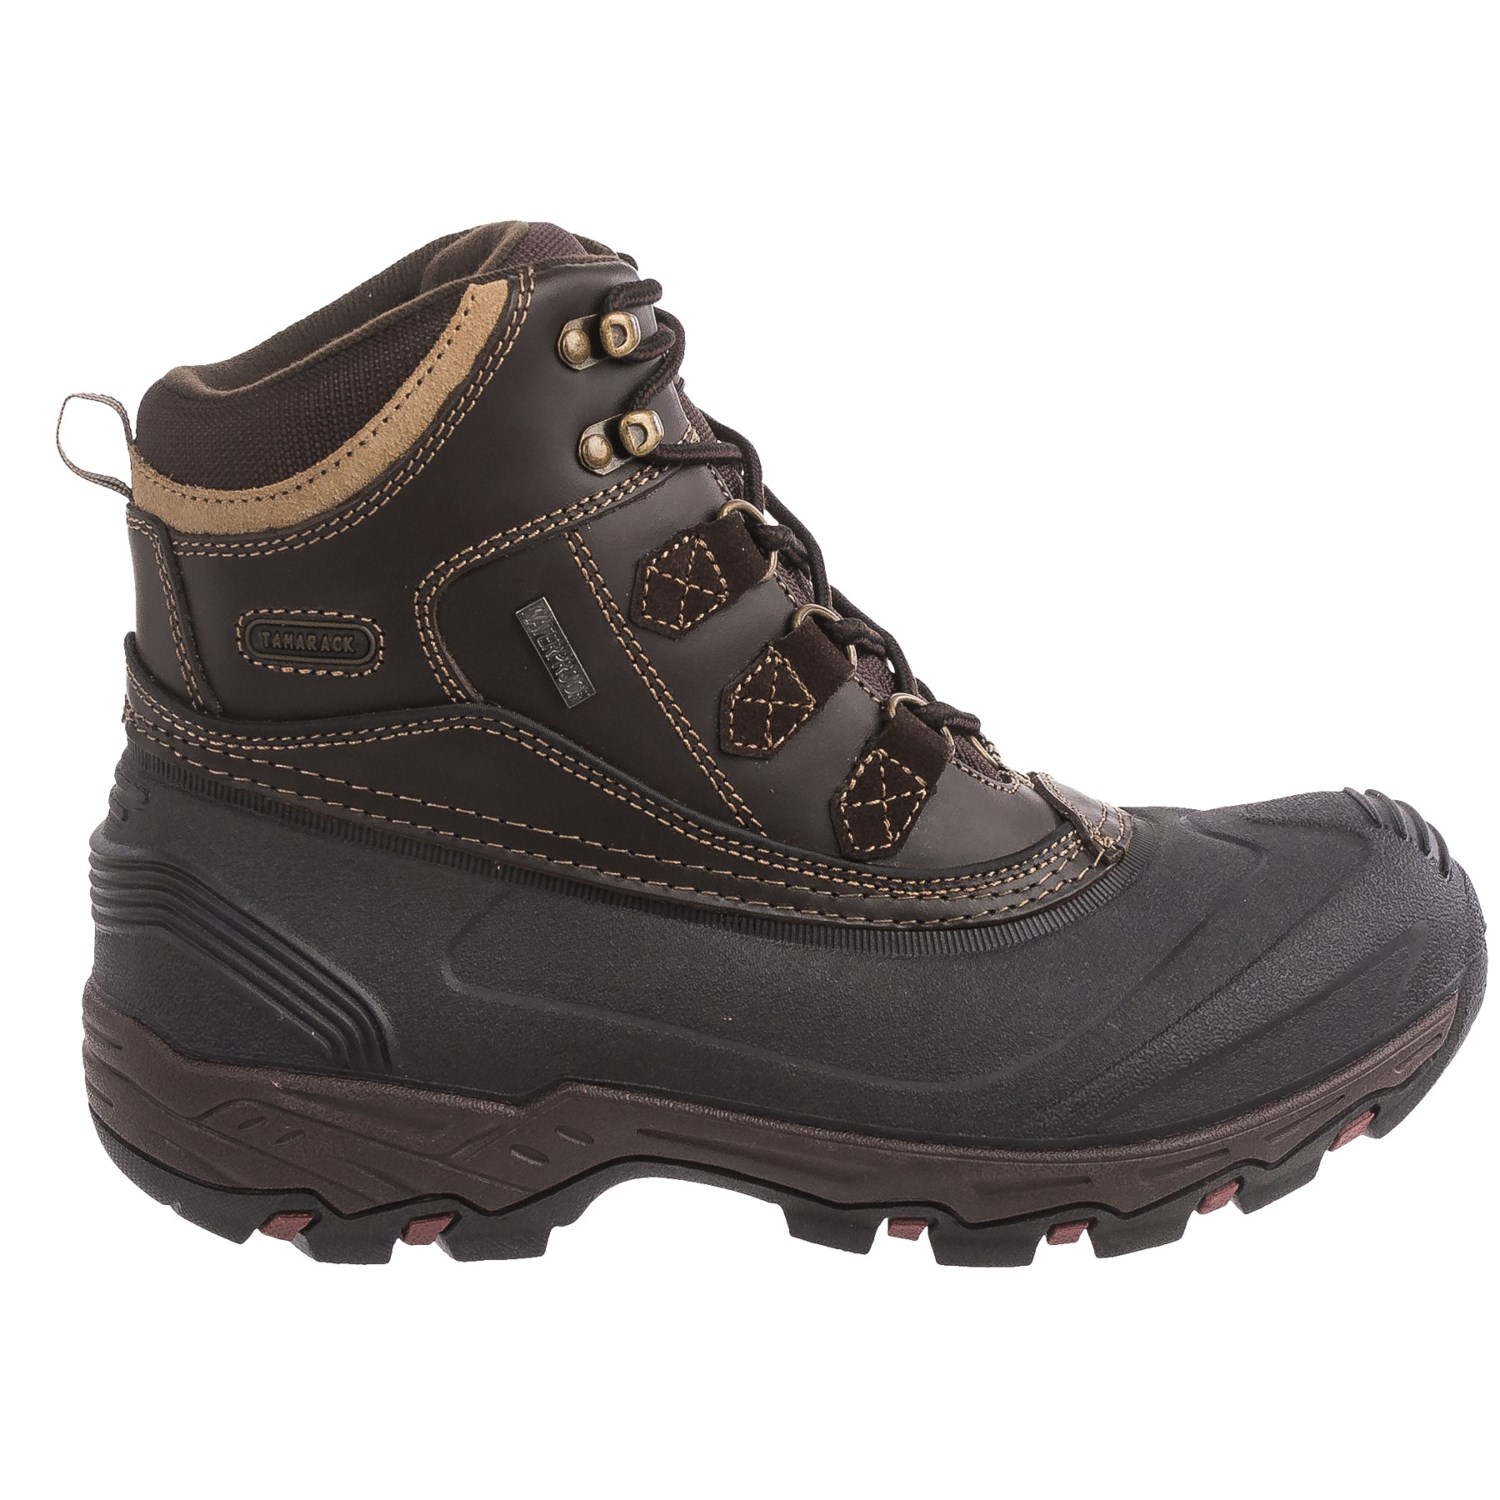 Tamarack 400g Thinsulate® Snow Boots (For Men) - Save 50%